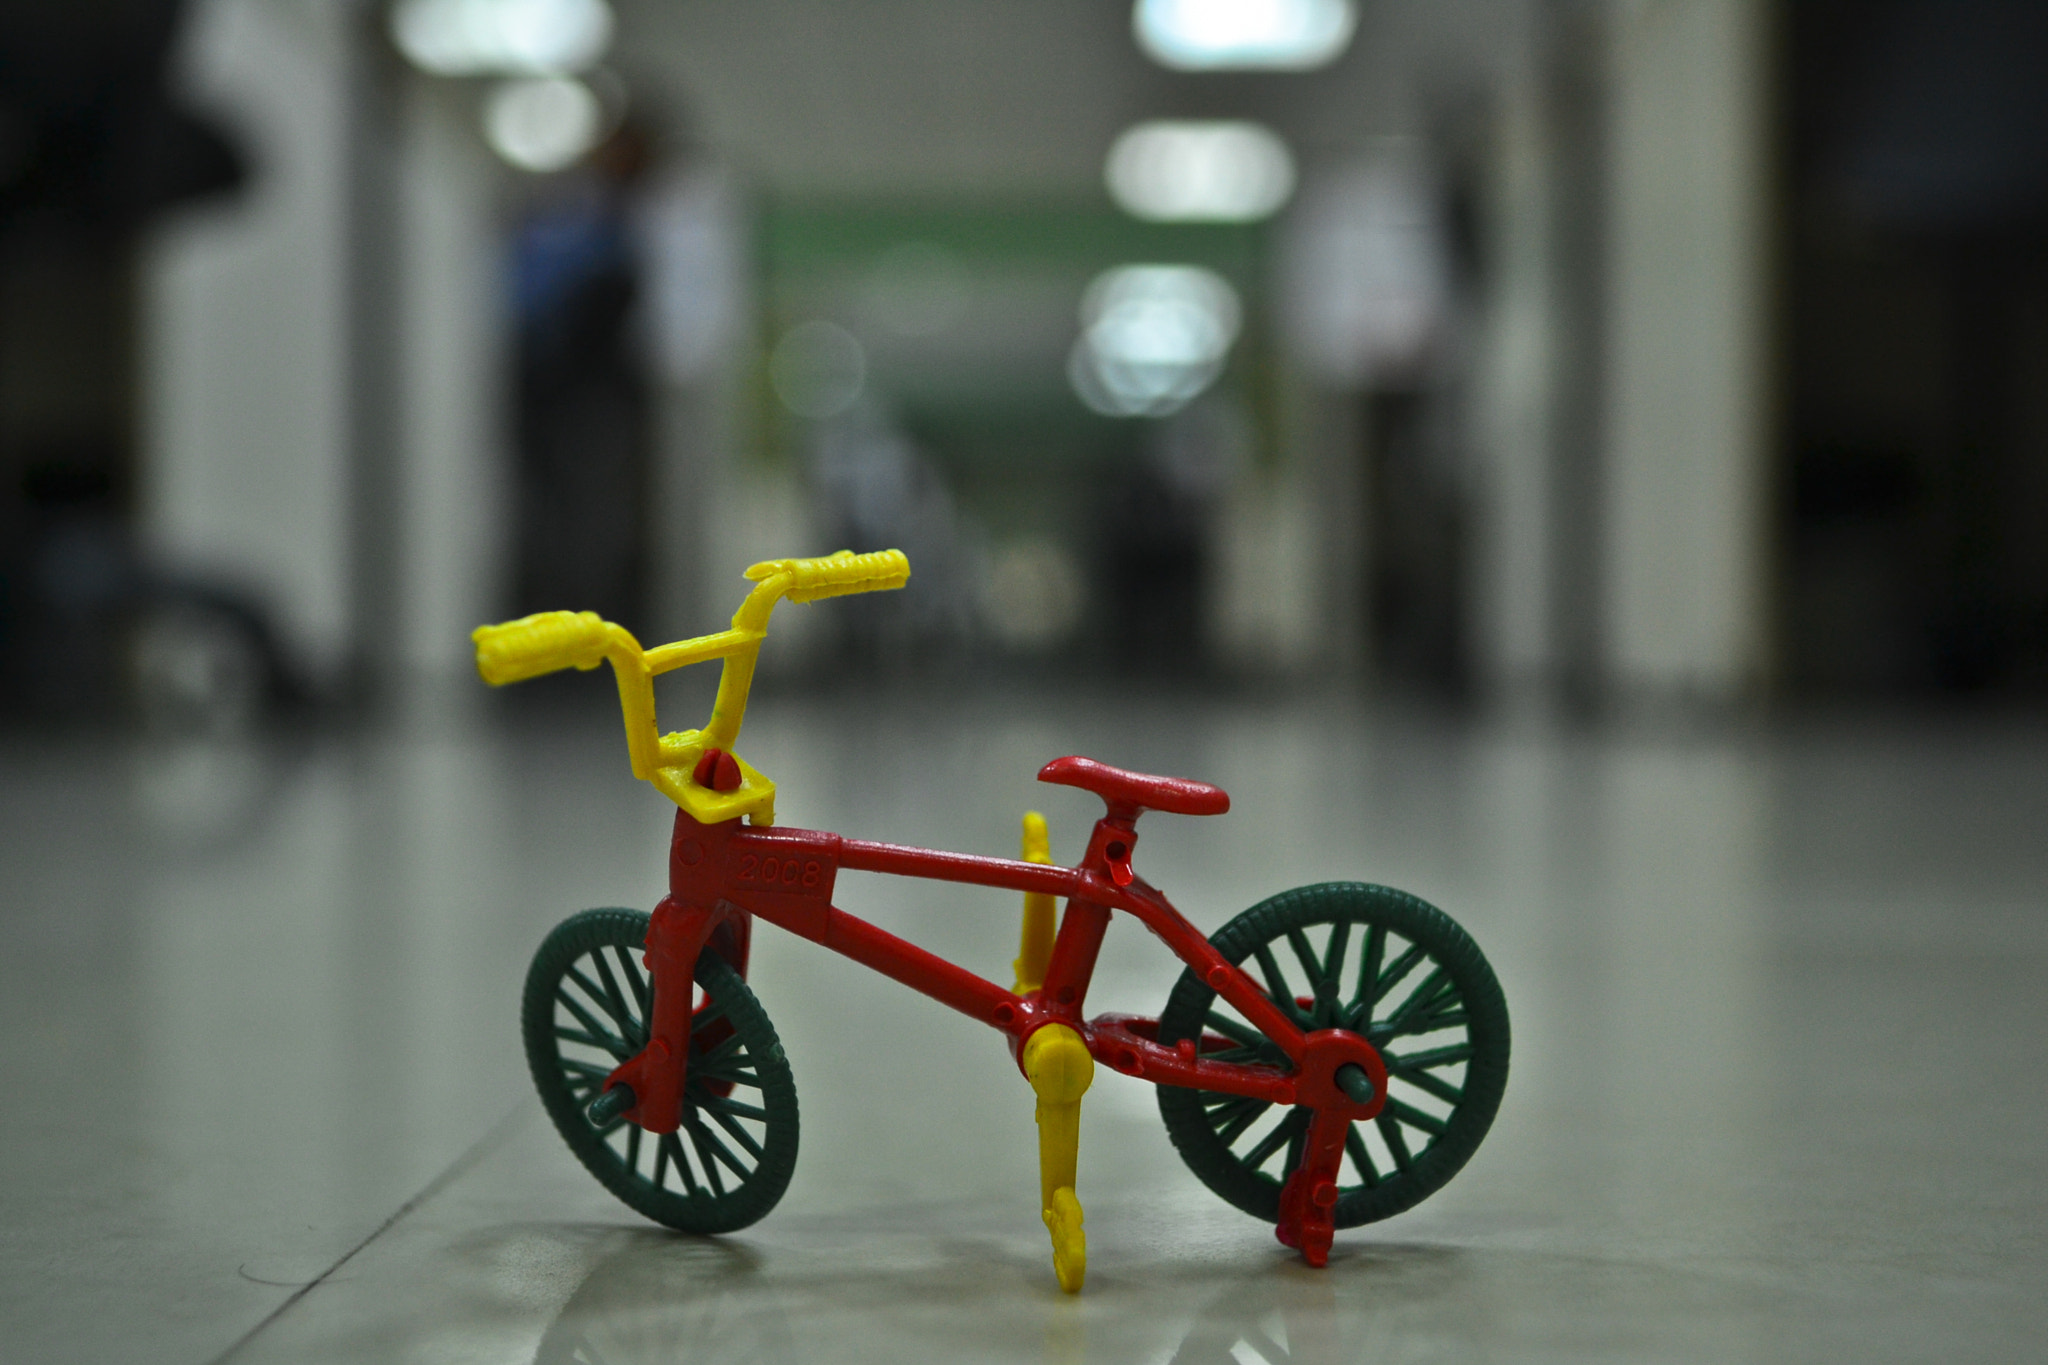 Photograph biking inside office by kumar varun on 500px